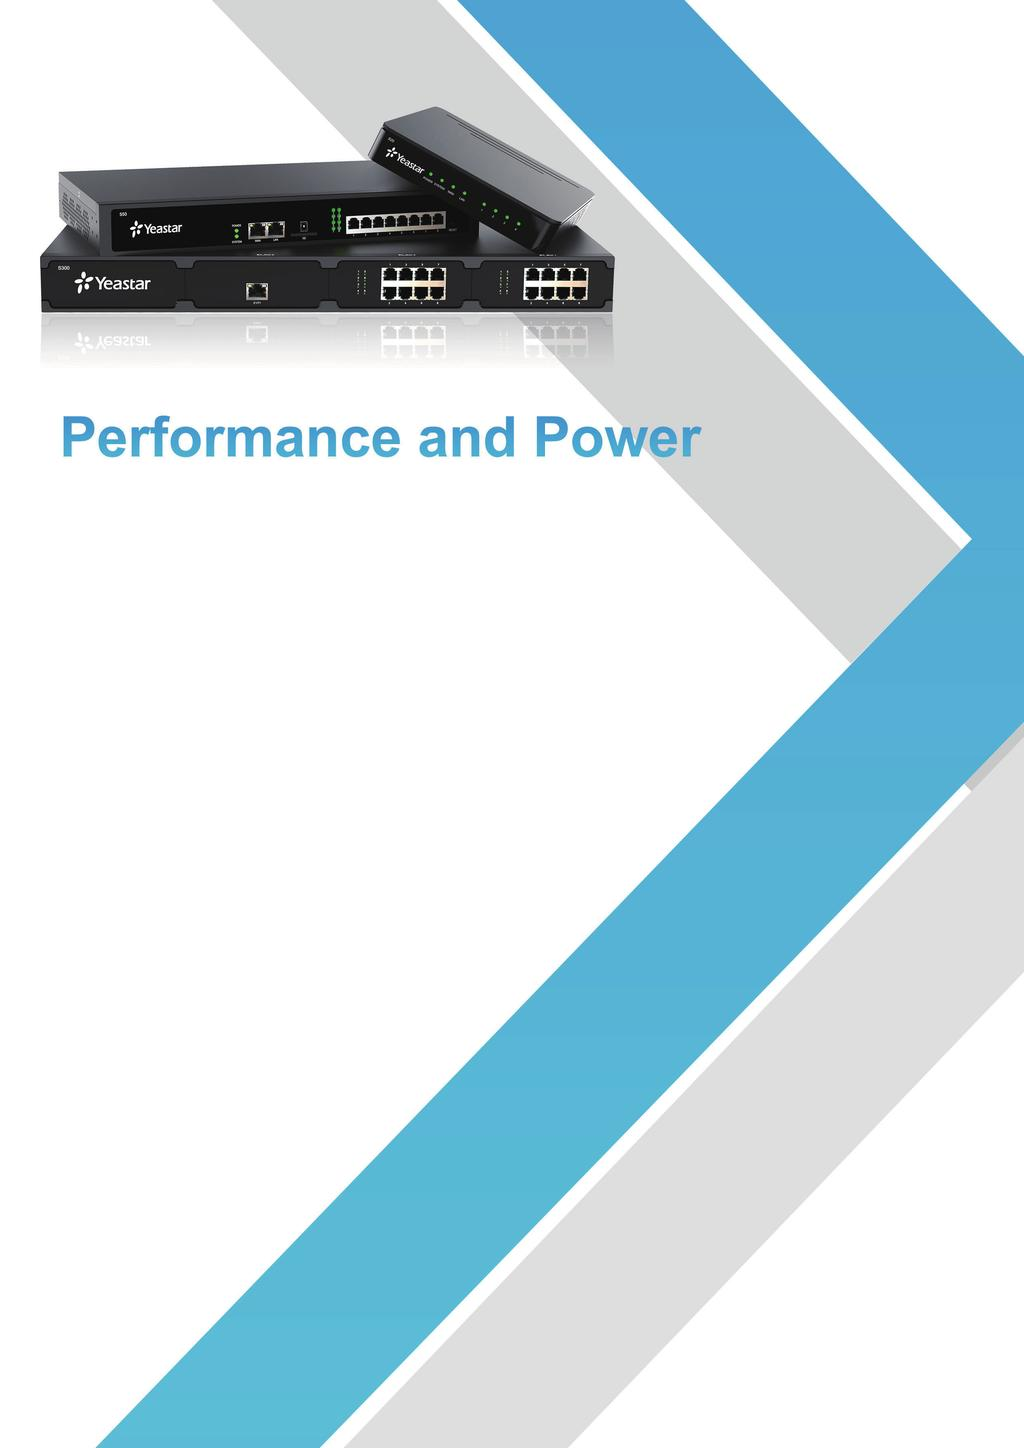 Another breakthrough from Yeastar, the new S-Series raises the price performance bar and sets new standards.